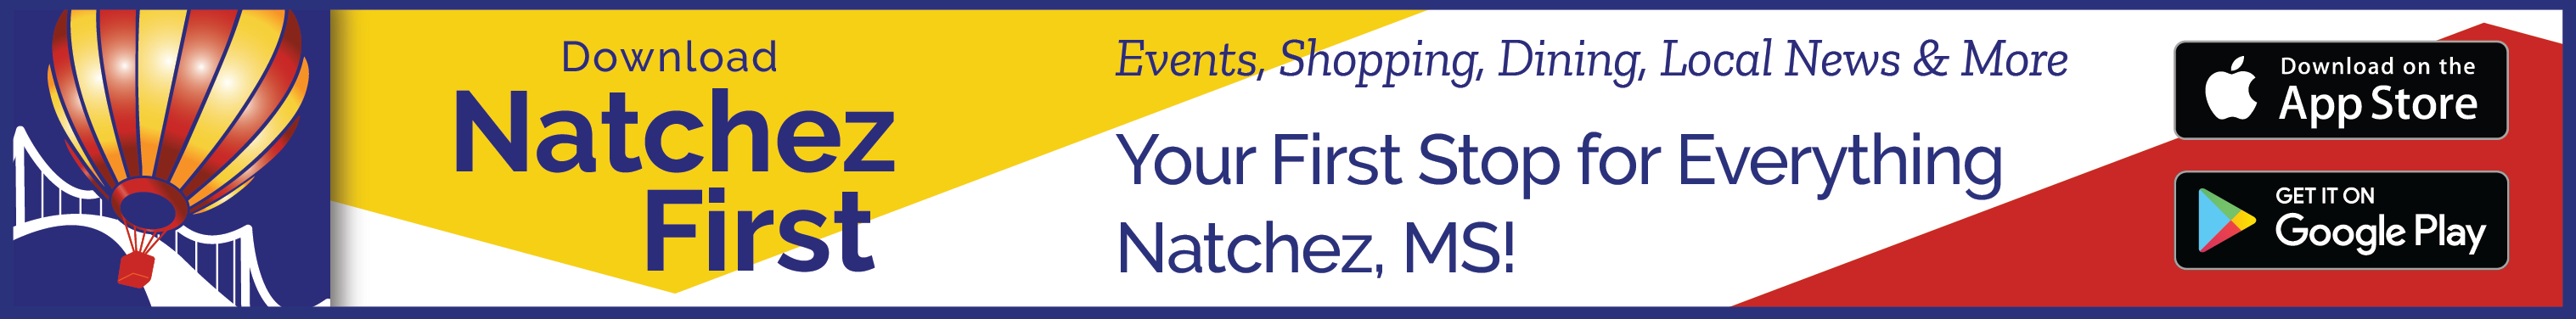 Download the Natchez First app